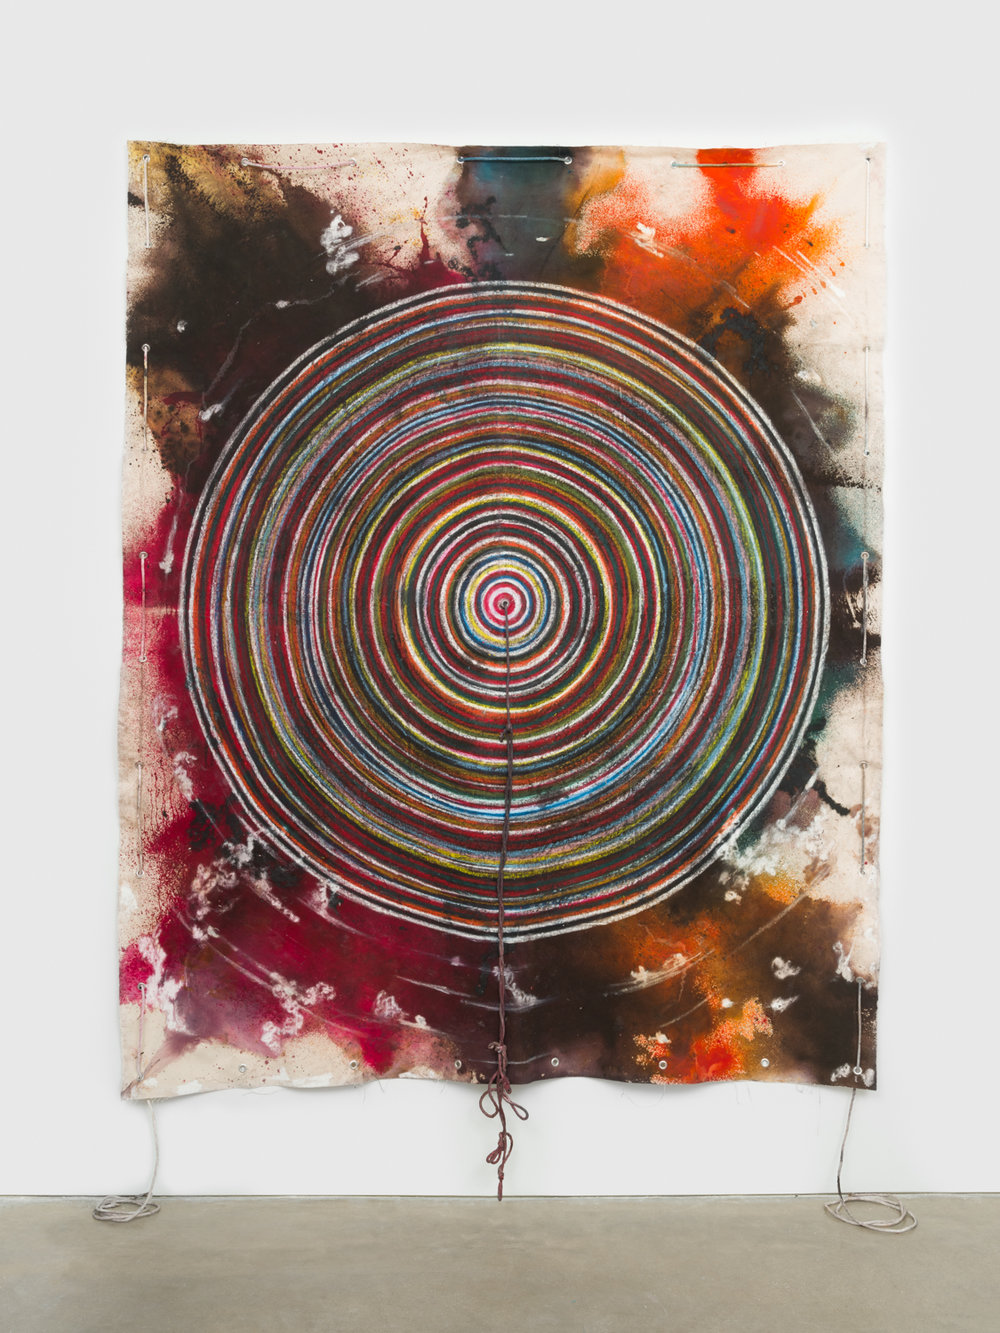 NaotakaHiro  Untitled (Crawl #7)  2018 Canvas, fabric dye, oil pastel, rope and grommets 108h x 84w in NaoH037